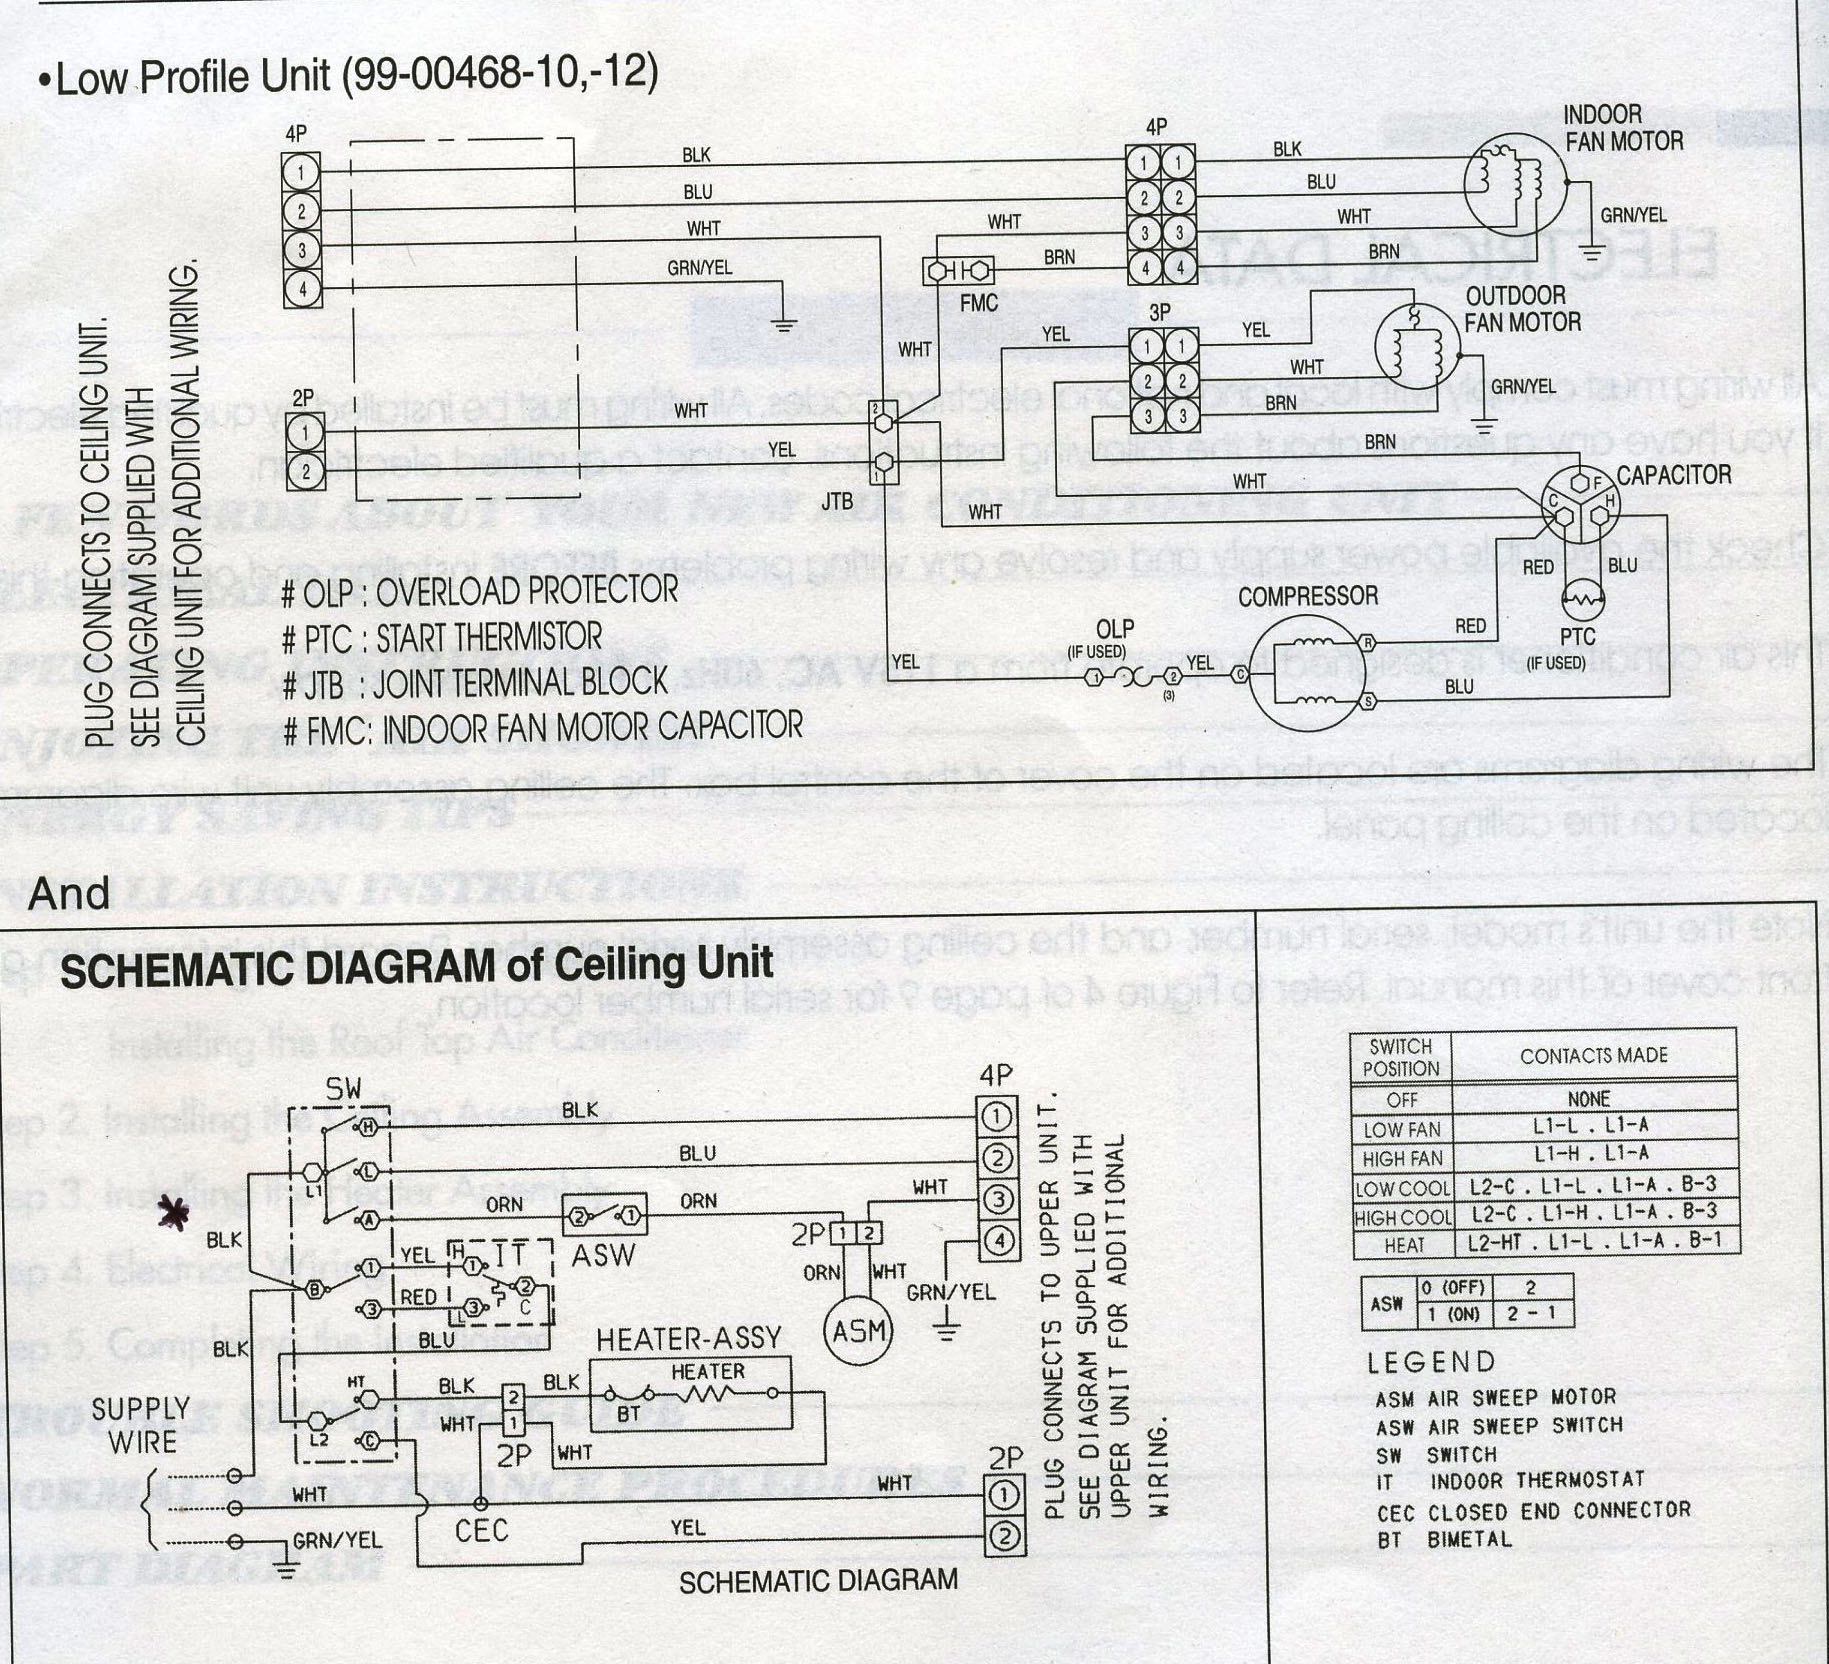 Carrier Wiring Diagram Everything About. Carrier Low Profile A C Wiring Diagram Photo Gallery 30xa Air Handler. Wiring. Trane Condenser Unit Wiring Diagram At Scoala.co